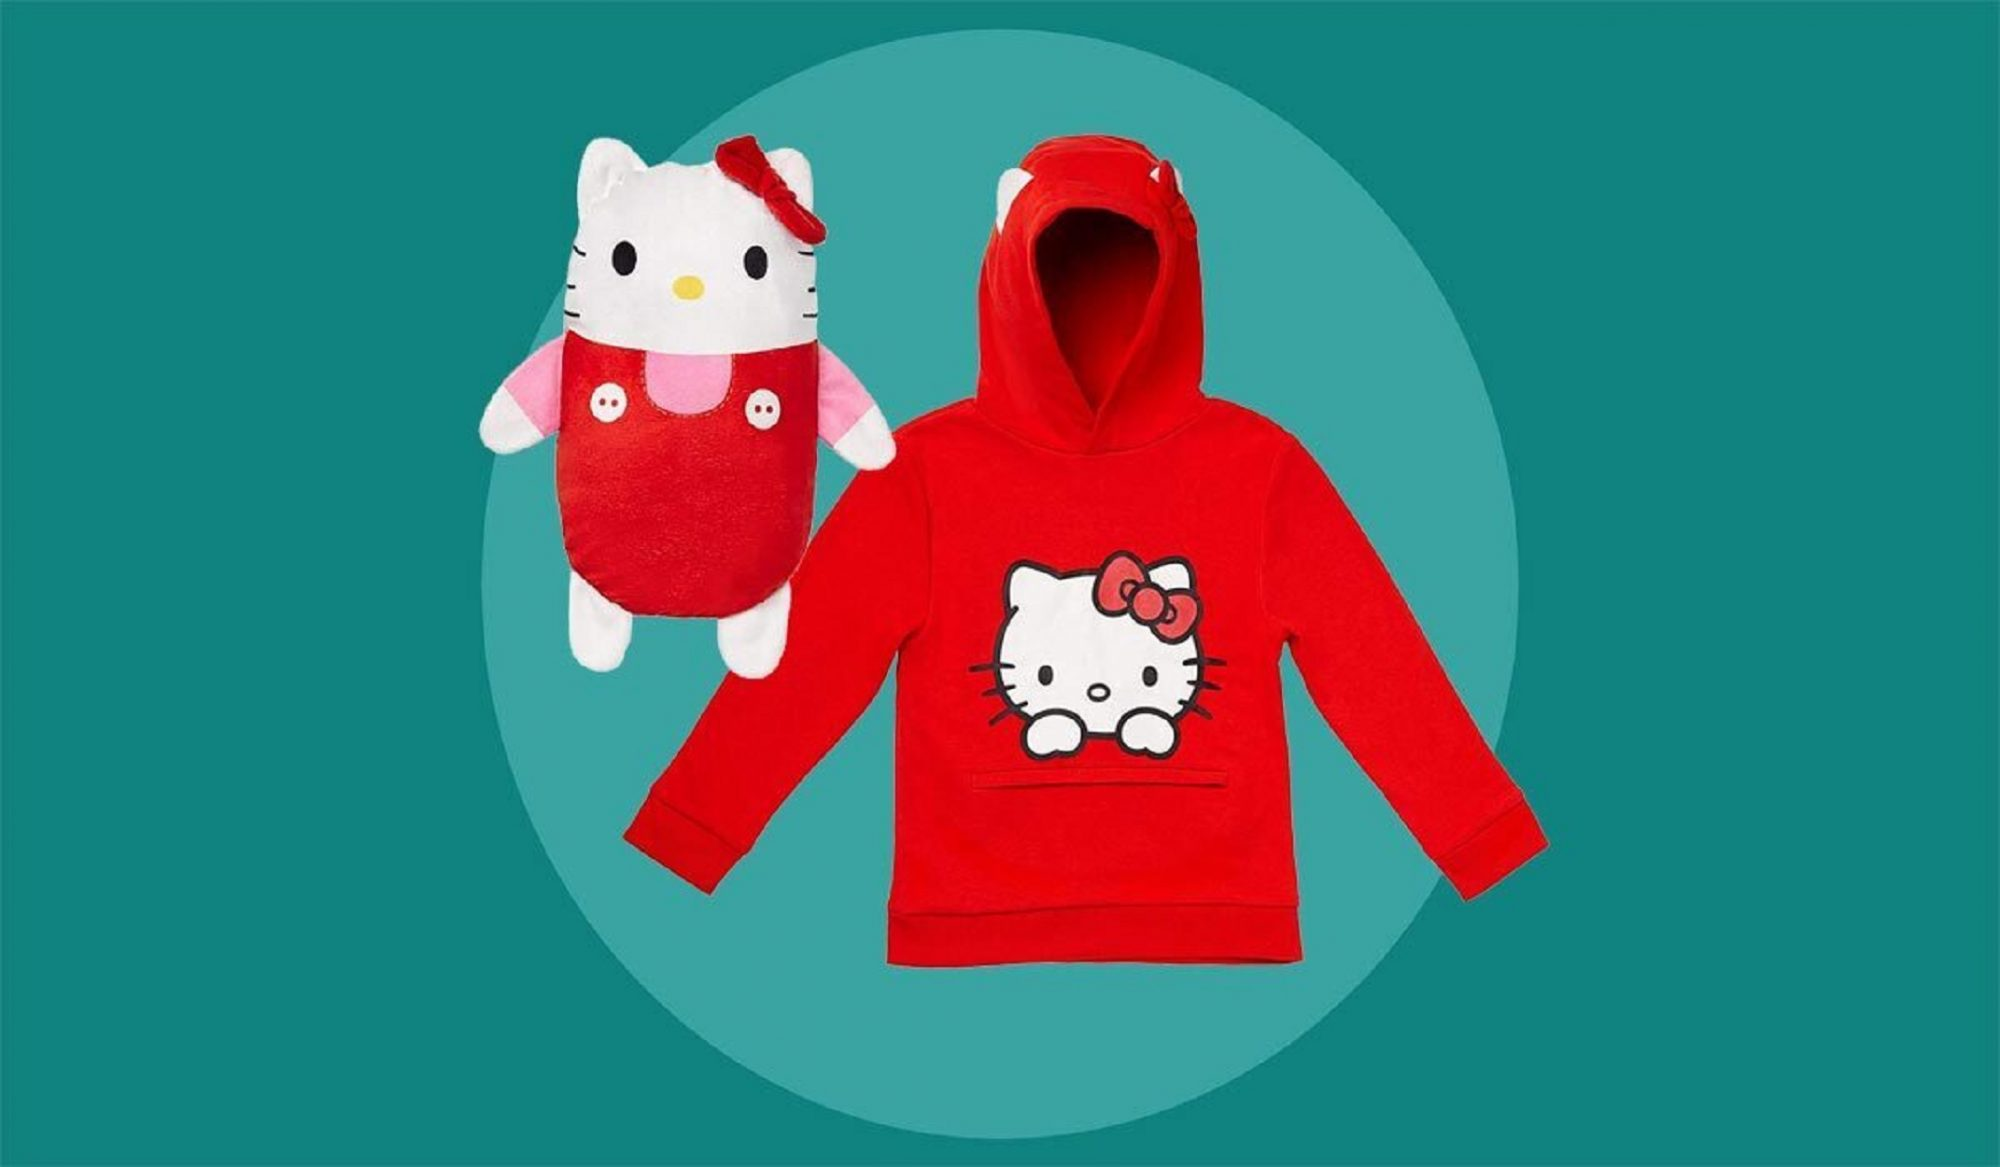 hello kitty stuffed animal and red hoodie